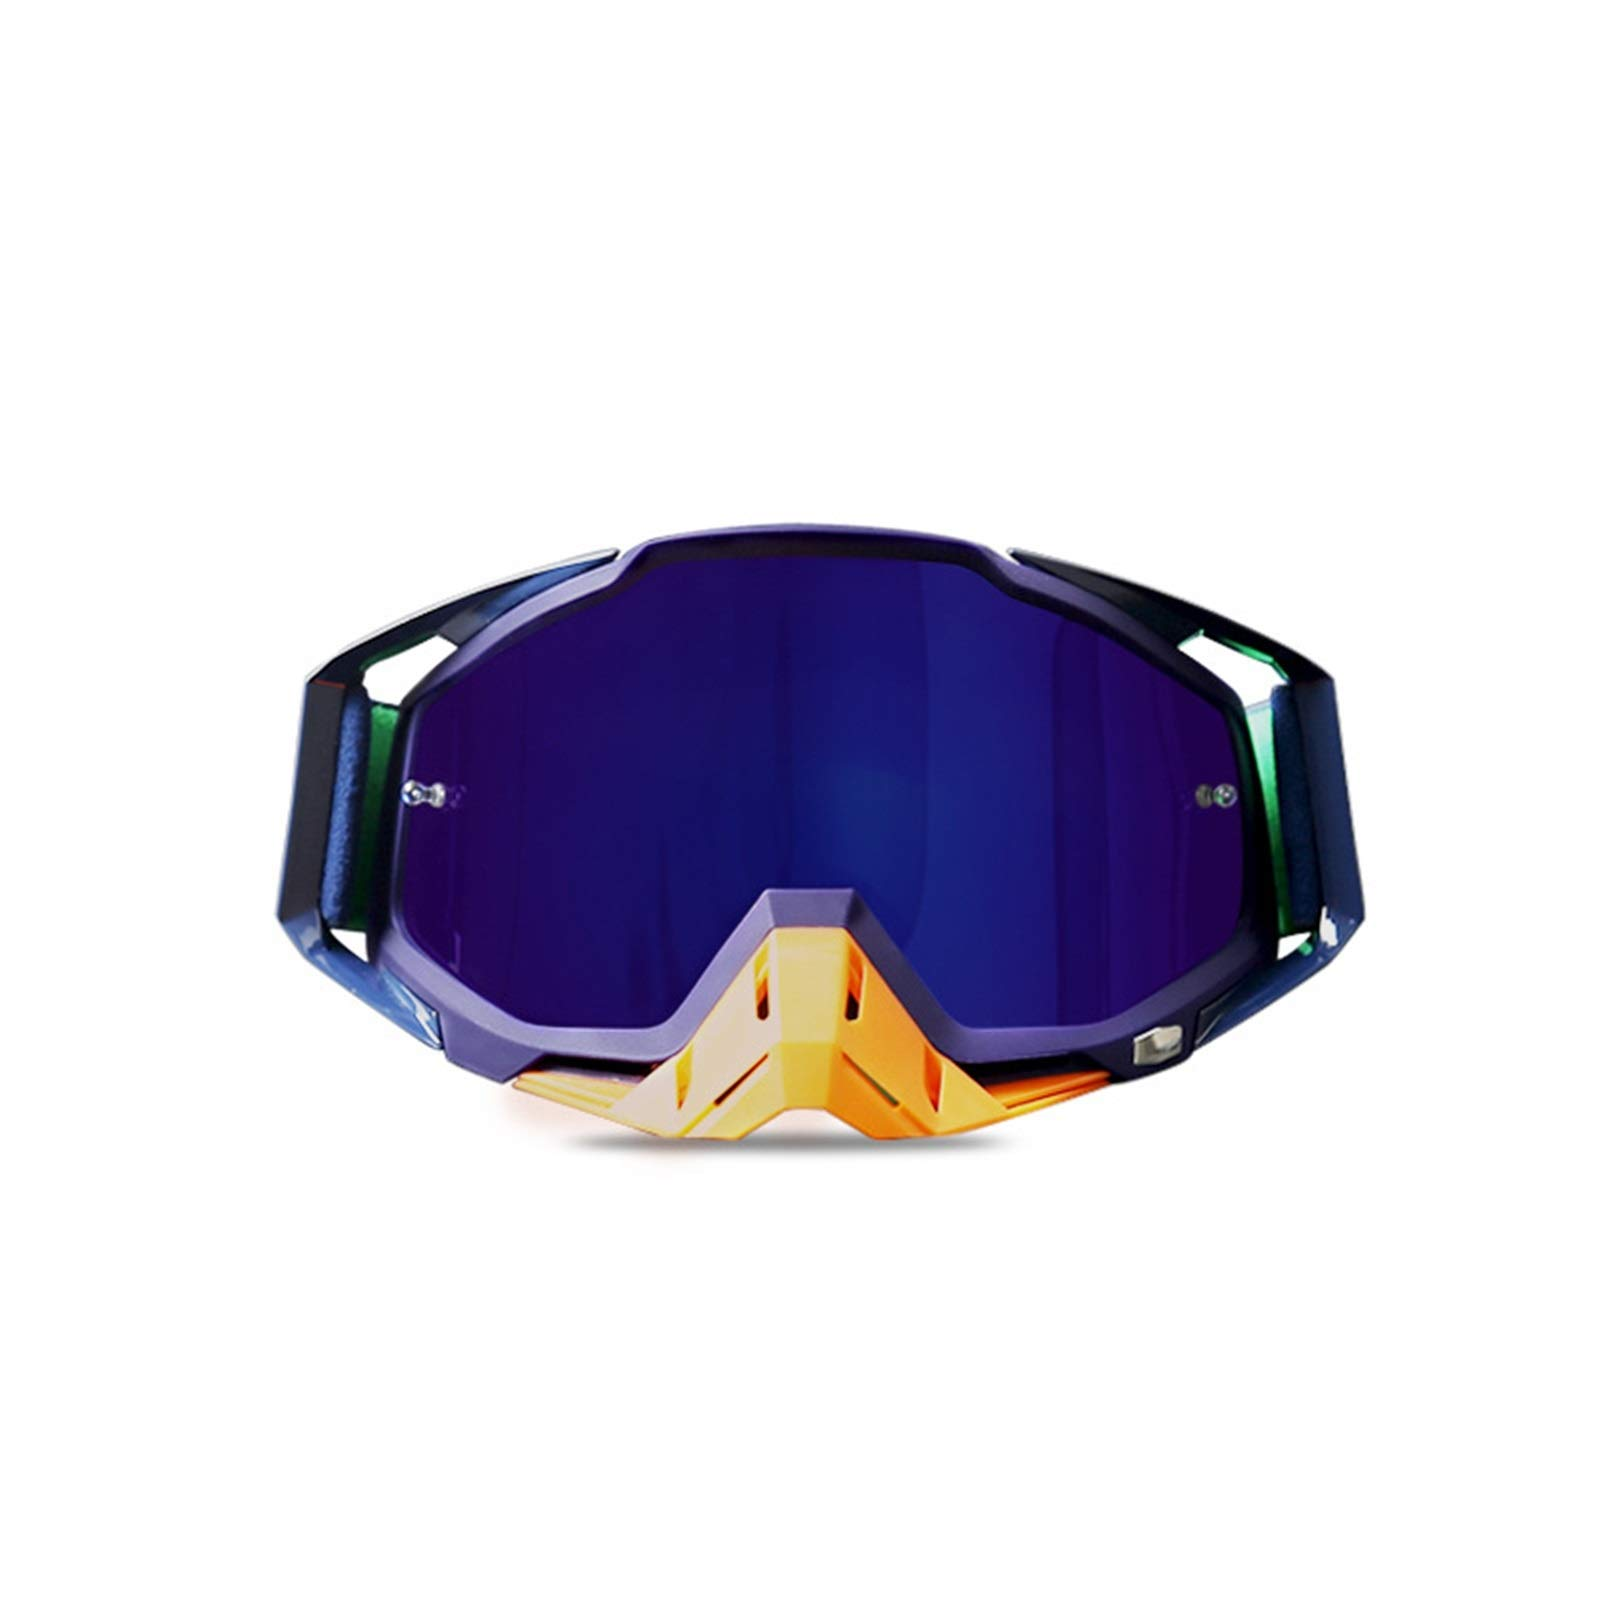 Adisaer Winter Sport Protection Goggles Motorcycle Racing Riding Goggles ski Goggles Purple Blue Orange for Adults